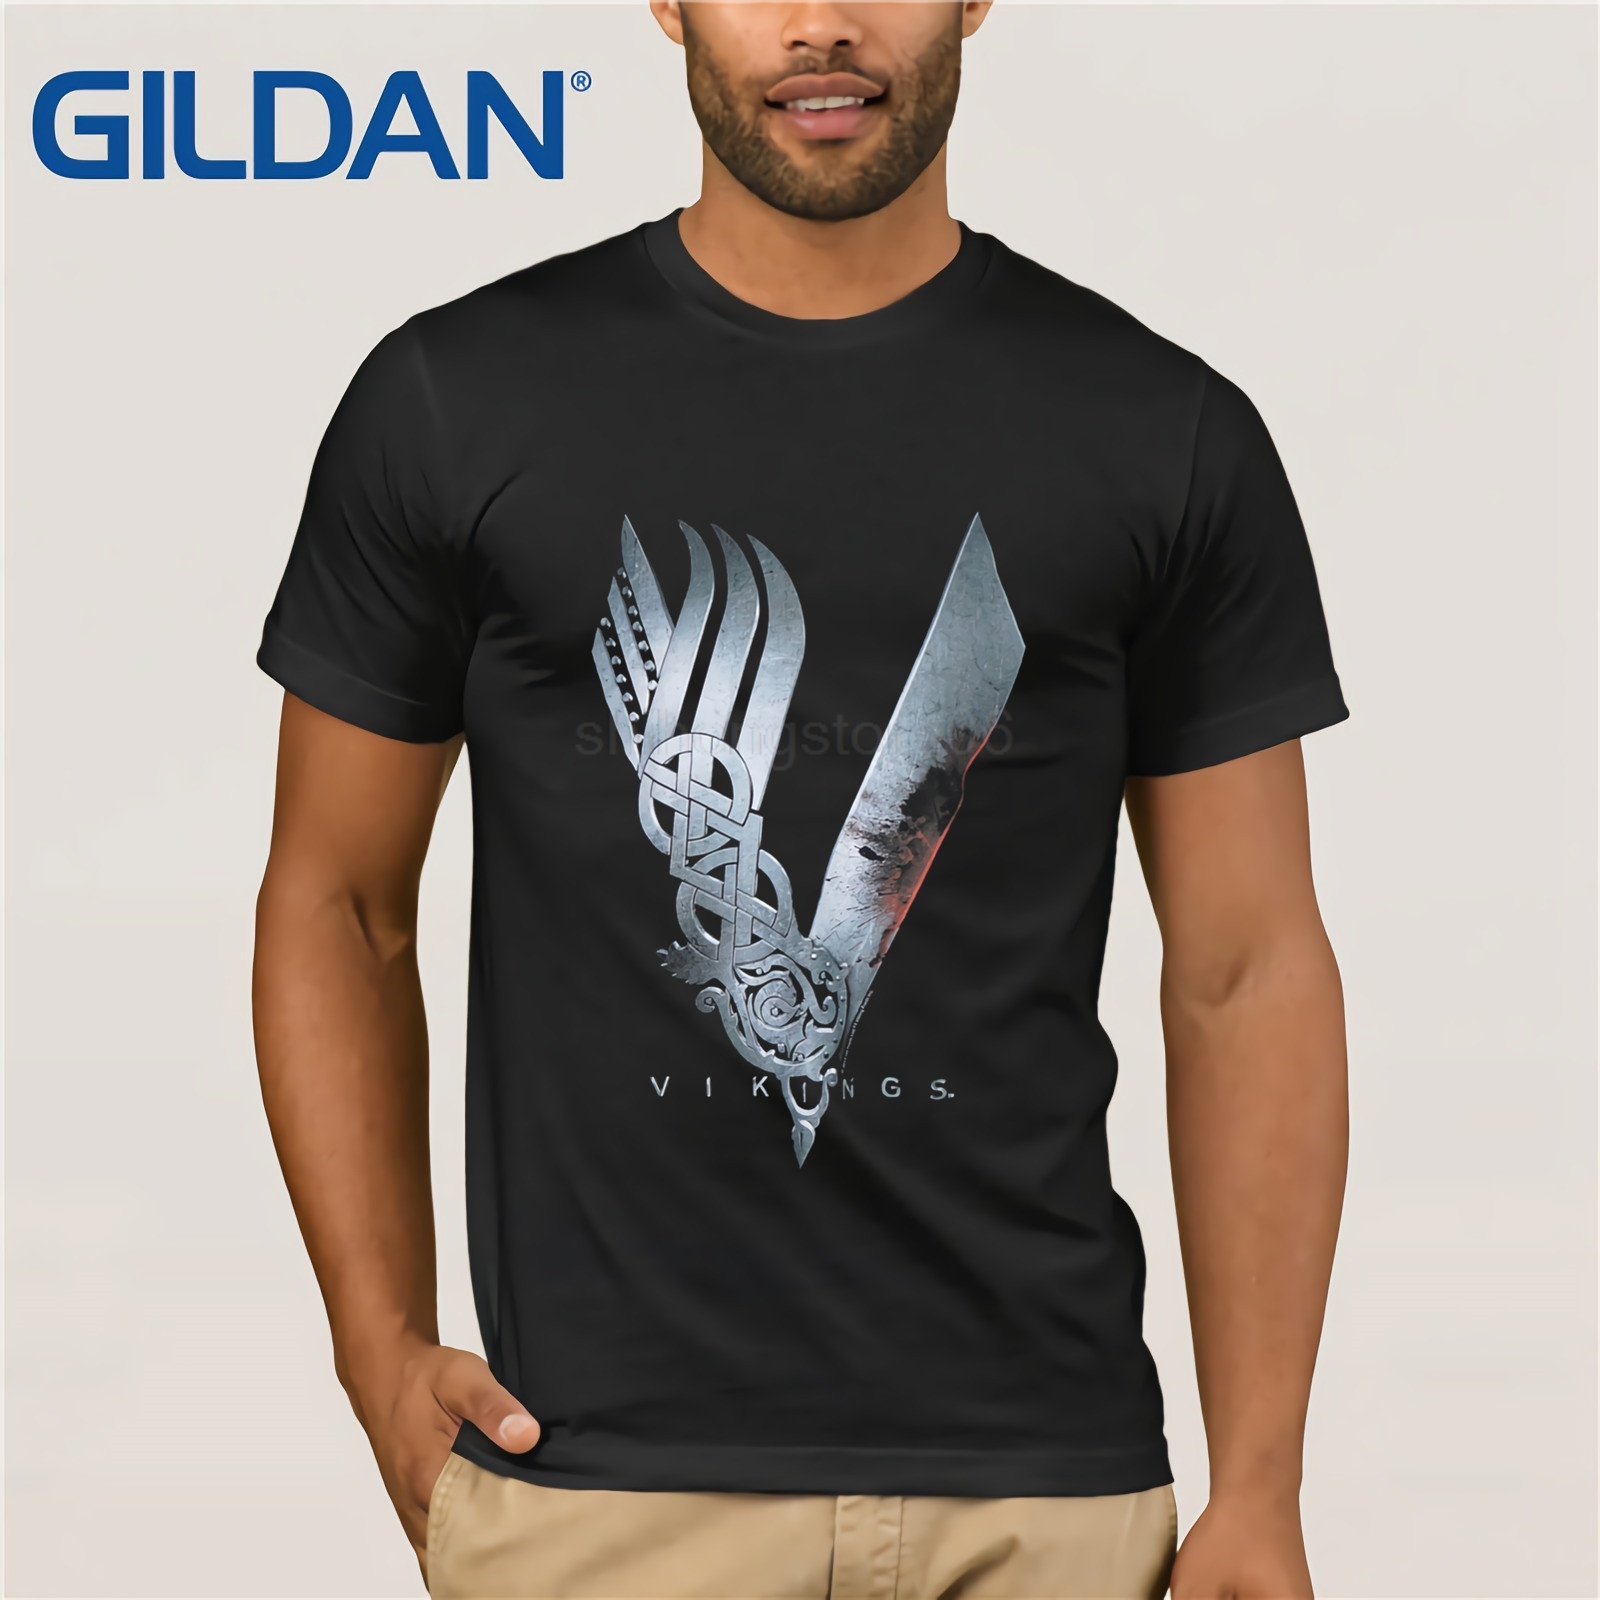 Gildan New   T     Shirts   Unisex Funny Tops Tee Authentic Vikings Tv Series V Logo Black   T  -  shirt   S-xxl New